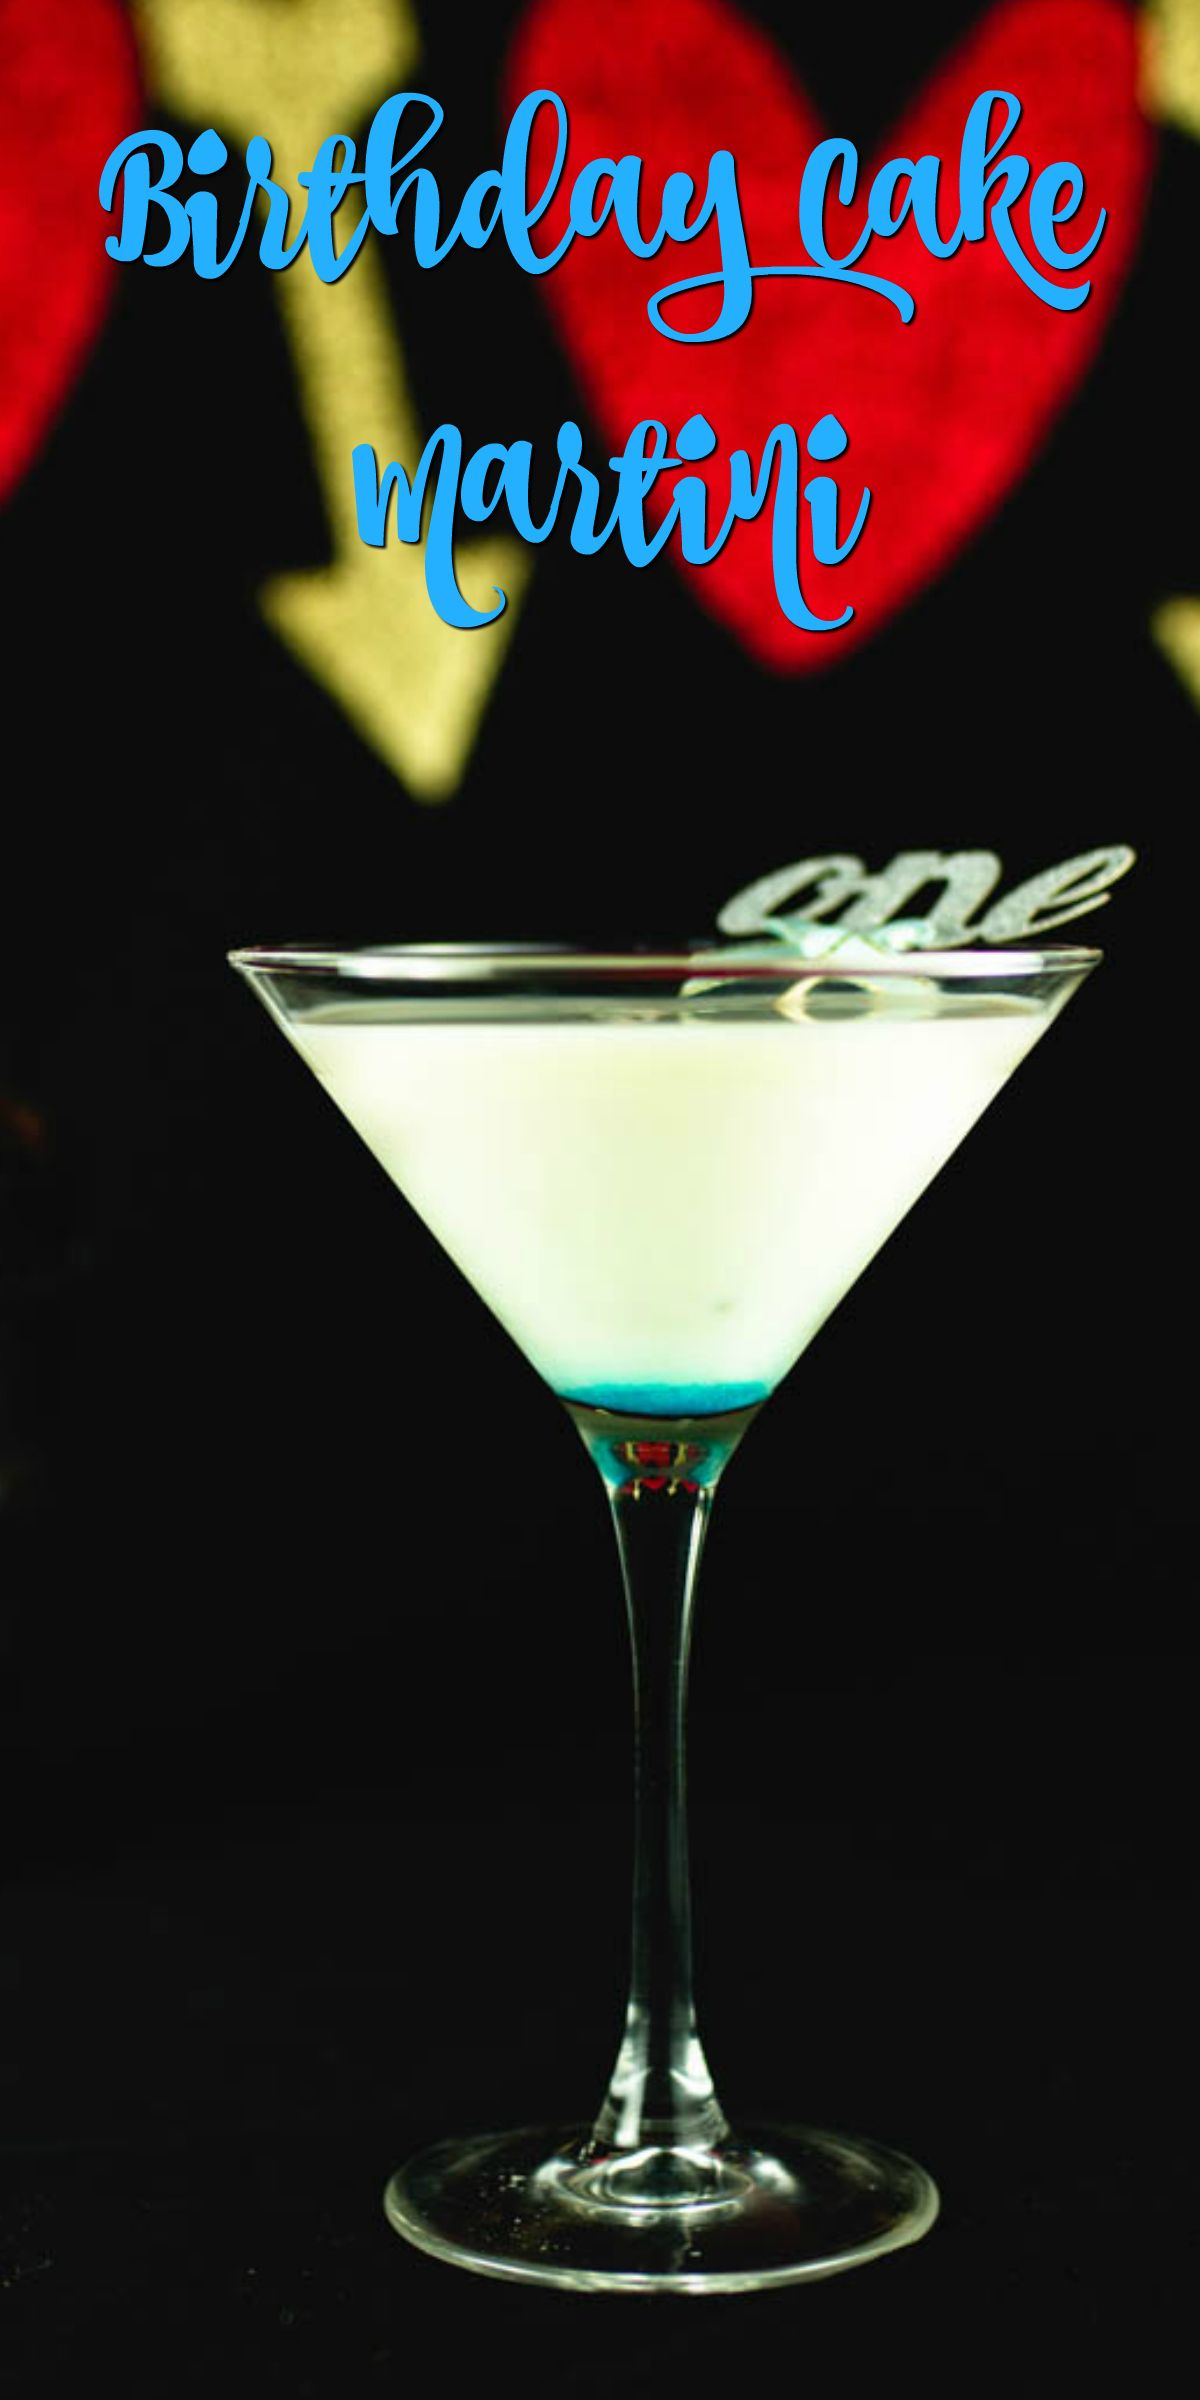 Birthday Cake Martini Birthday cake martini Chef food and Martinis